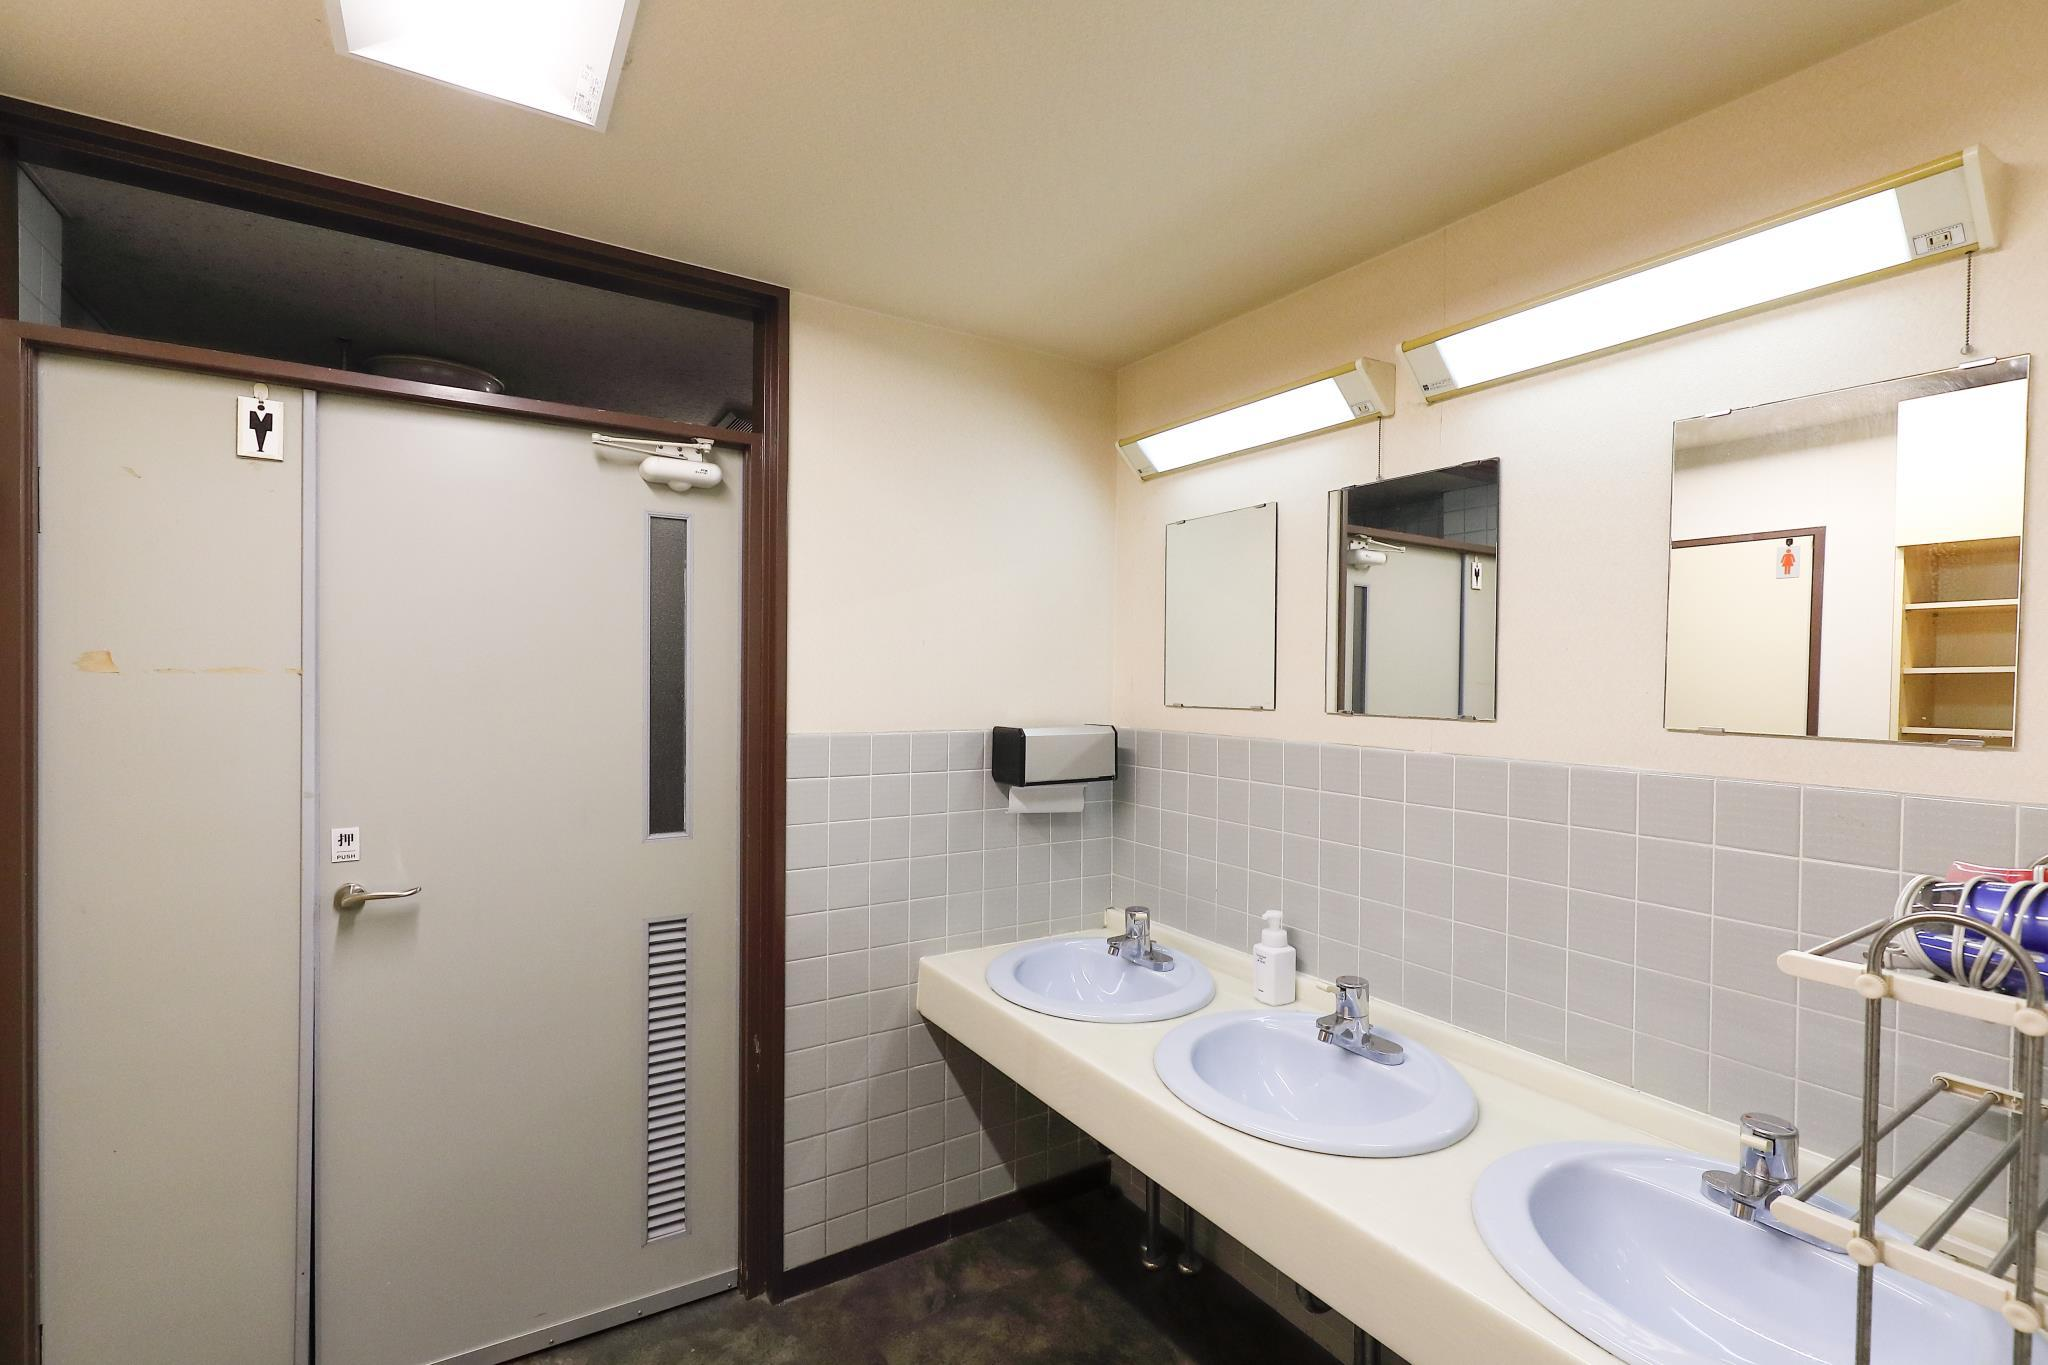 Deluxe Japanese Style Room for 5 People with Shared Toilet - Non-Smoking